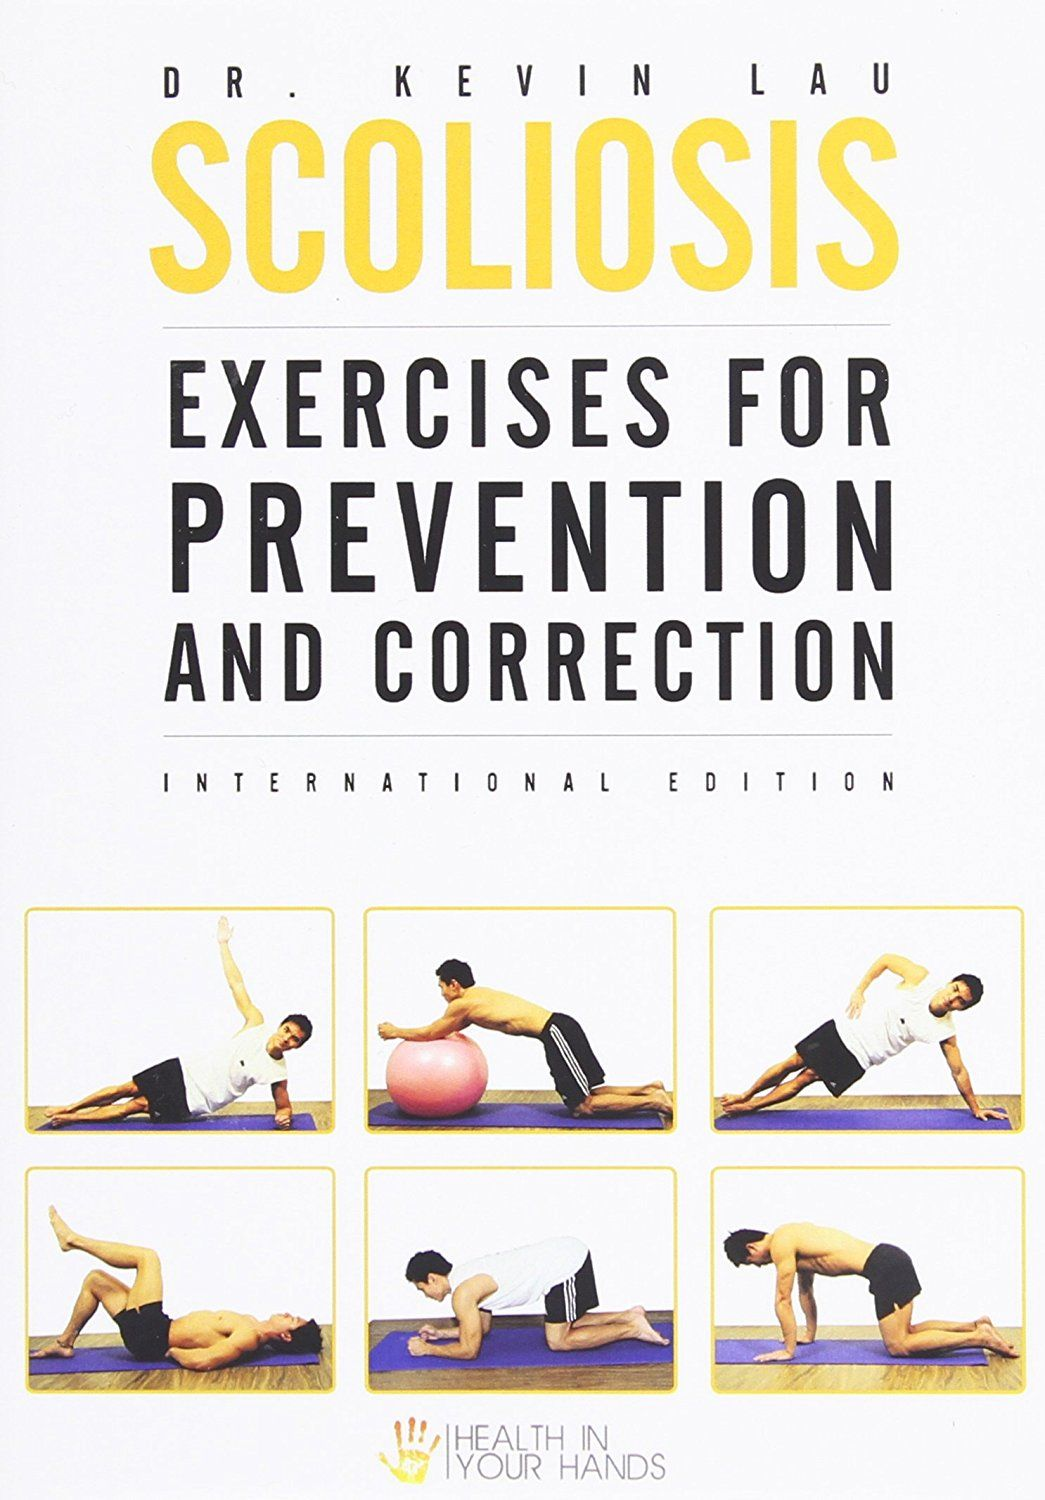 Exercises for adults and children with scoliosis, hernia and osteochondrosis, as well as for preventive purposes